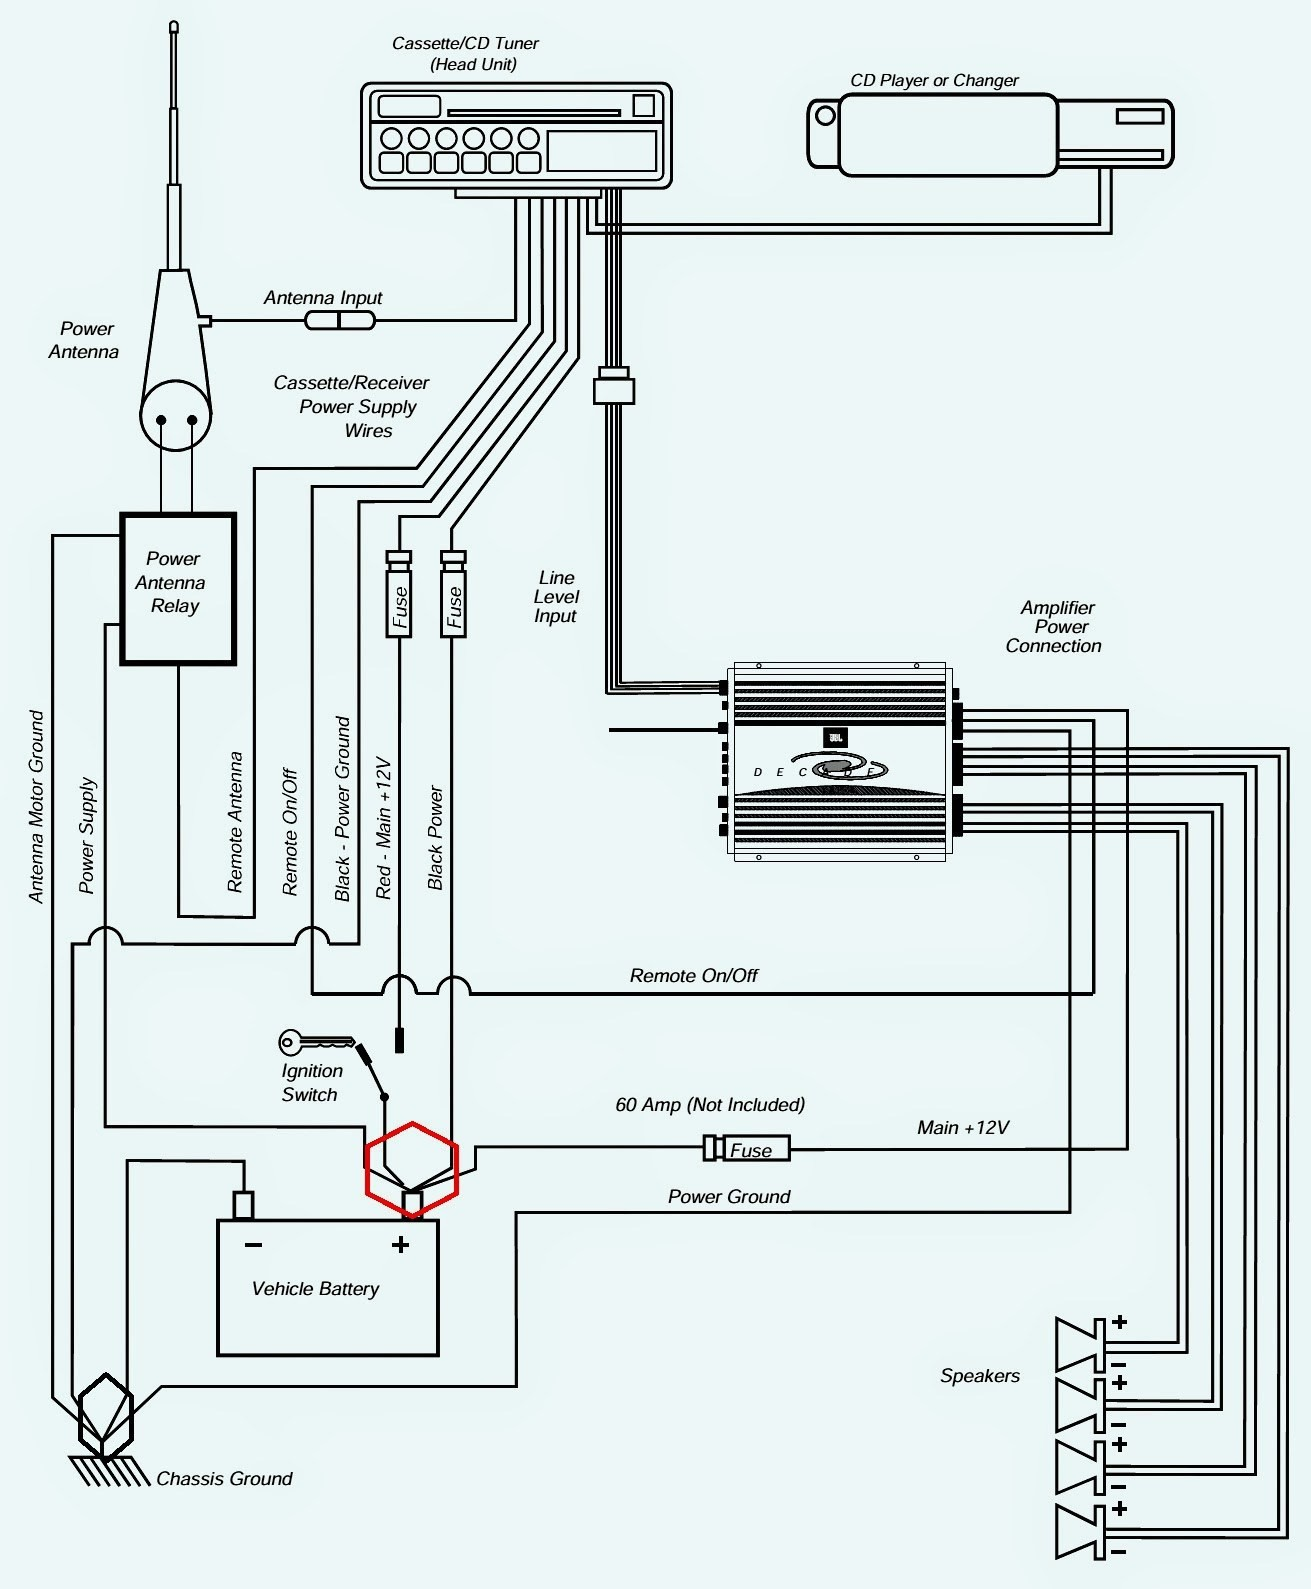 Wiring Diagram Car Stereo System Inspirational Wiring